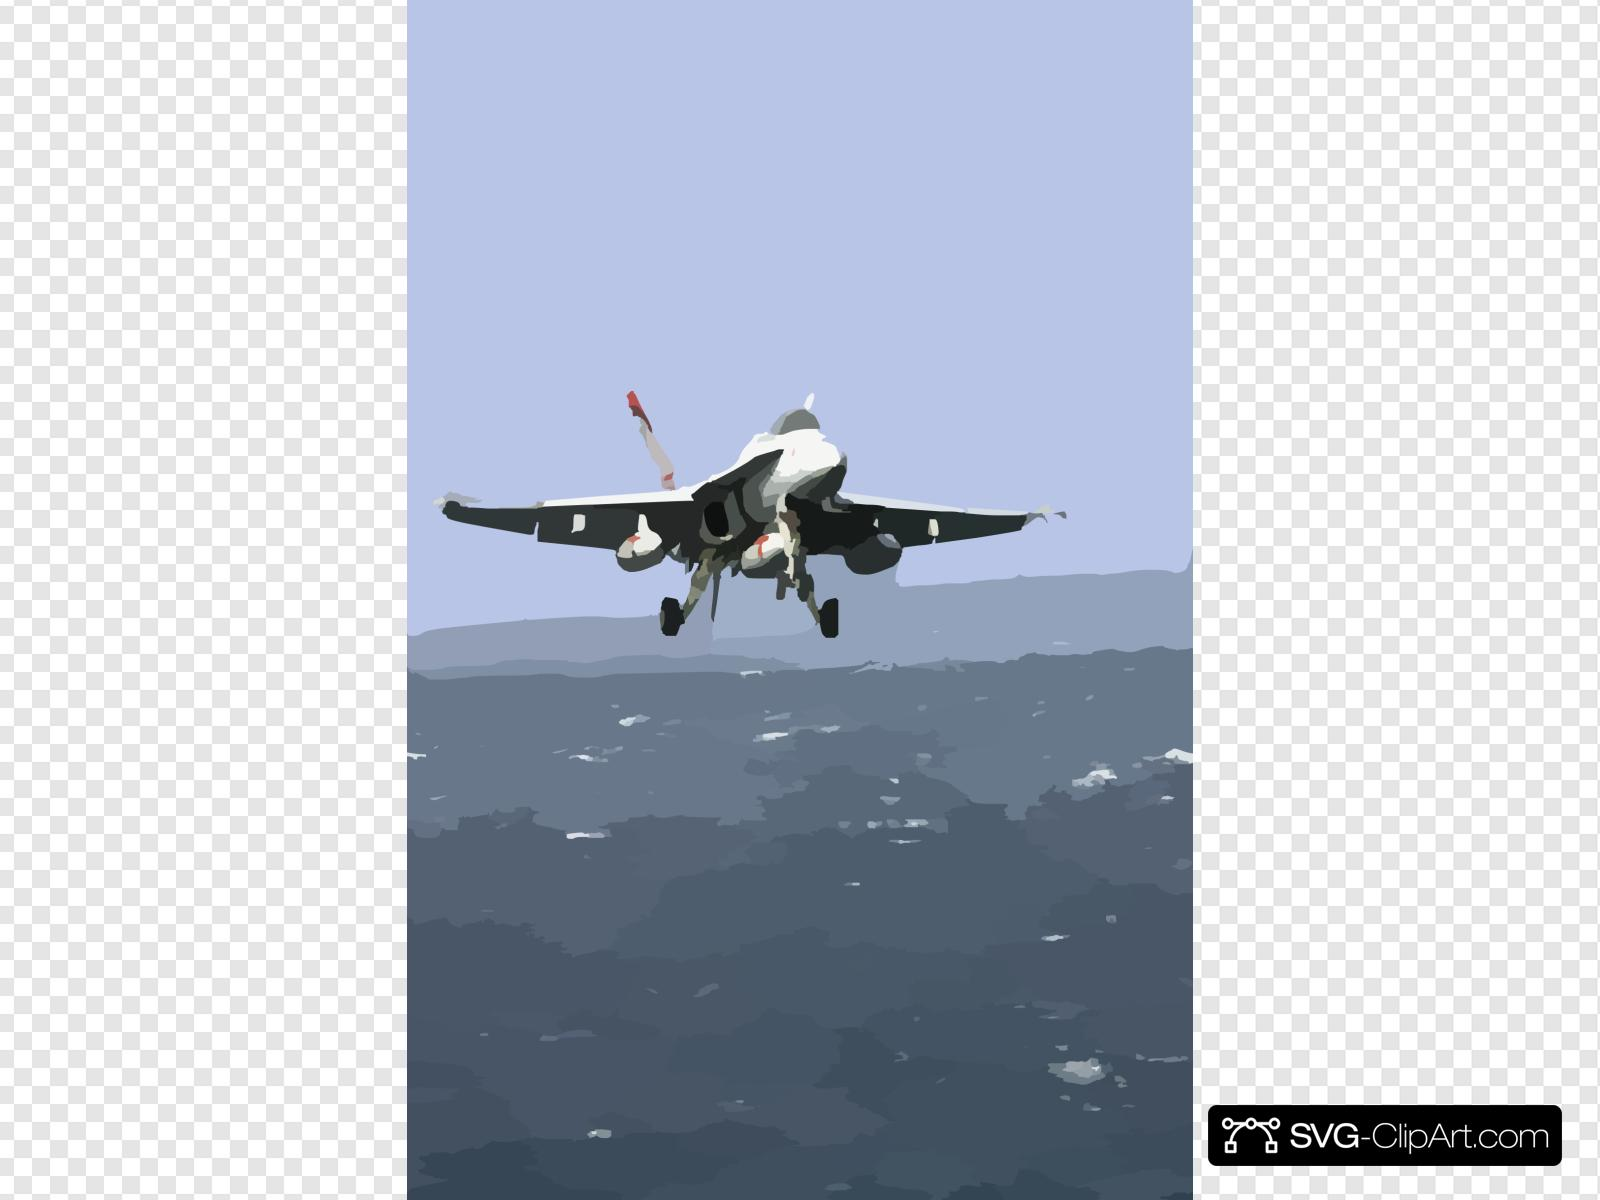 Super hornet flying clipart vector library stock A F/a-18e/f Super Hornet Comes In For An Arrested Landing On ... vector library stock